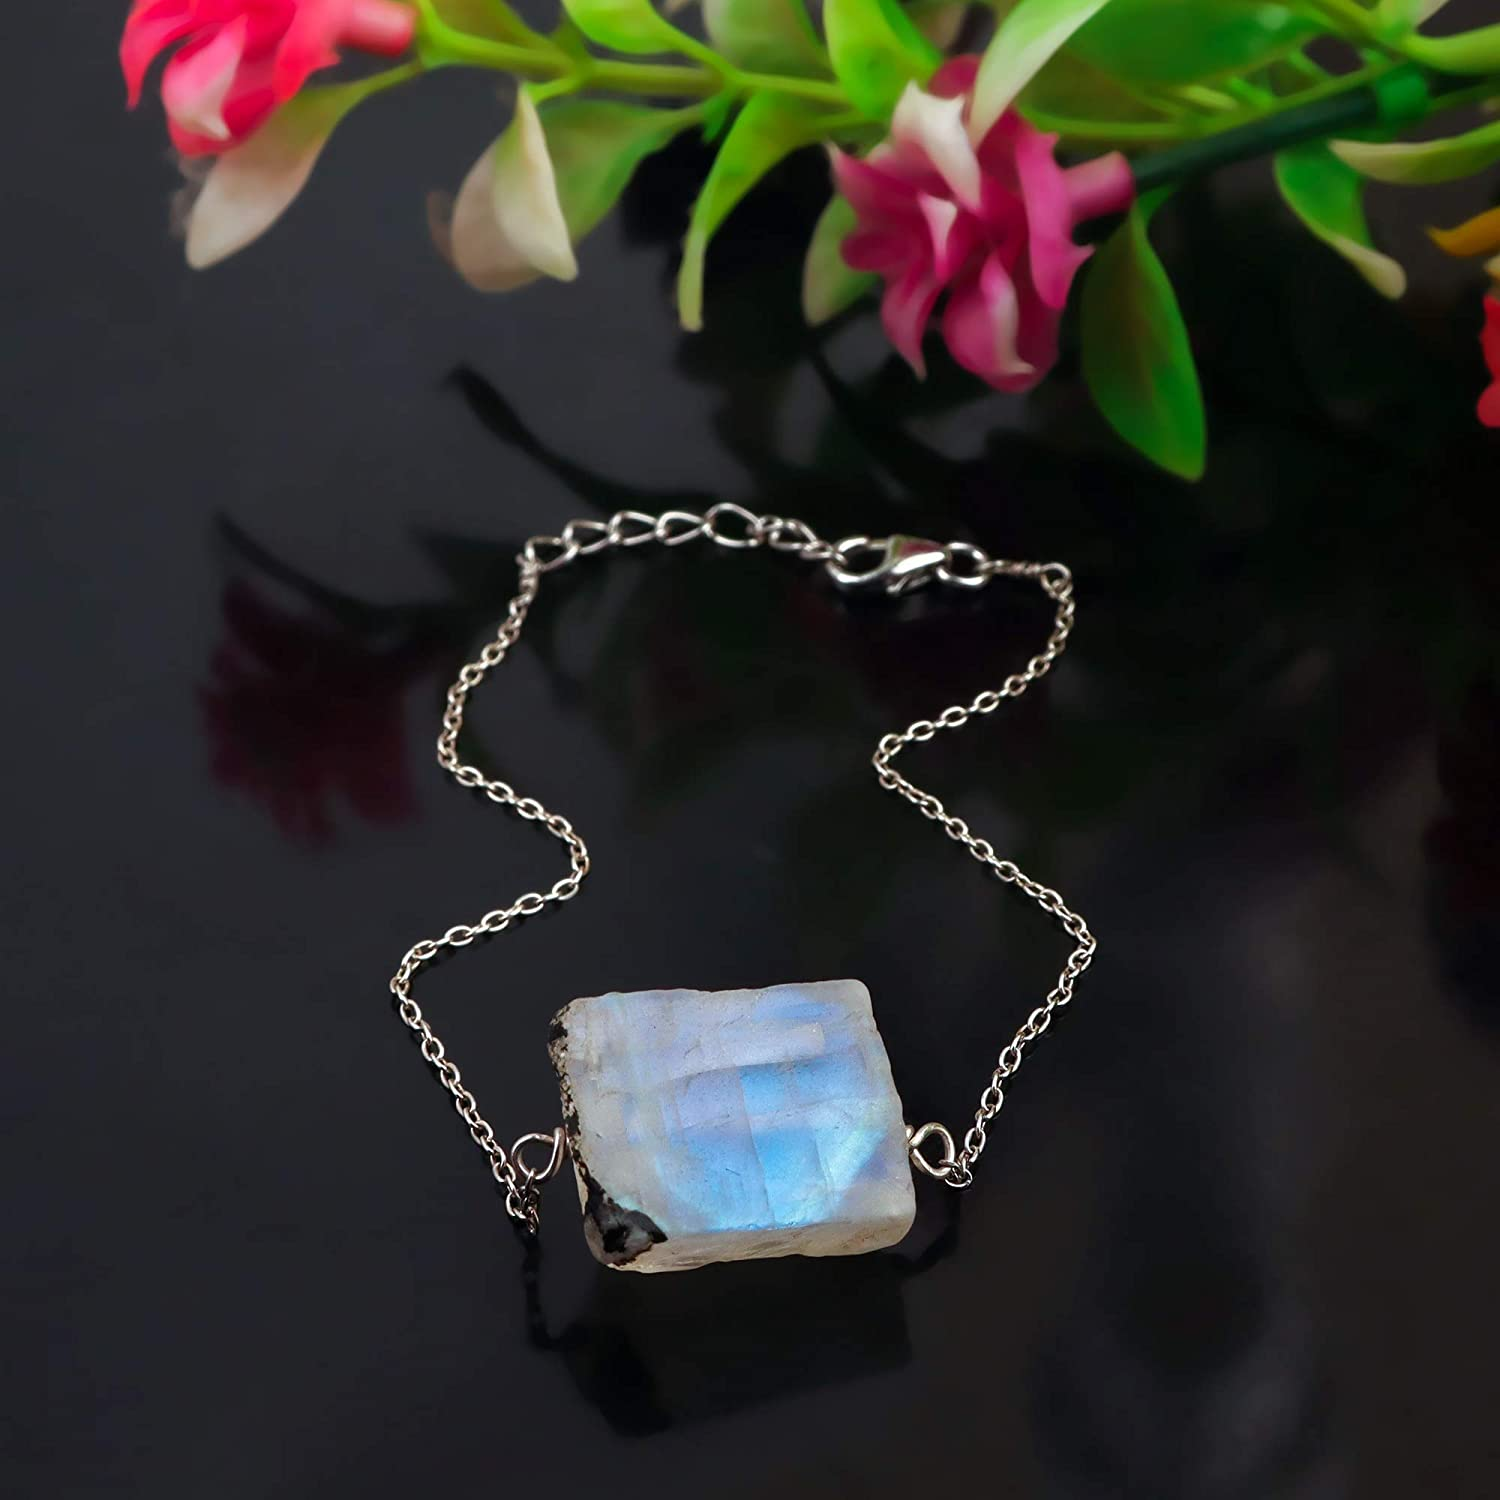 Natural Raw Moonstone Necklace 925 Streling Silver Jewelry Women Gemstone Gift